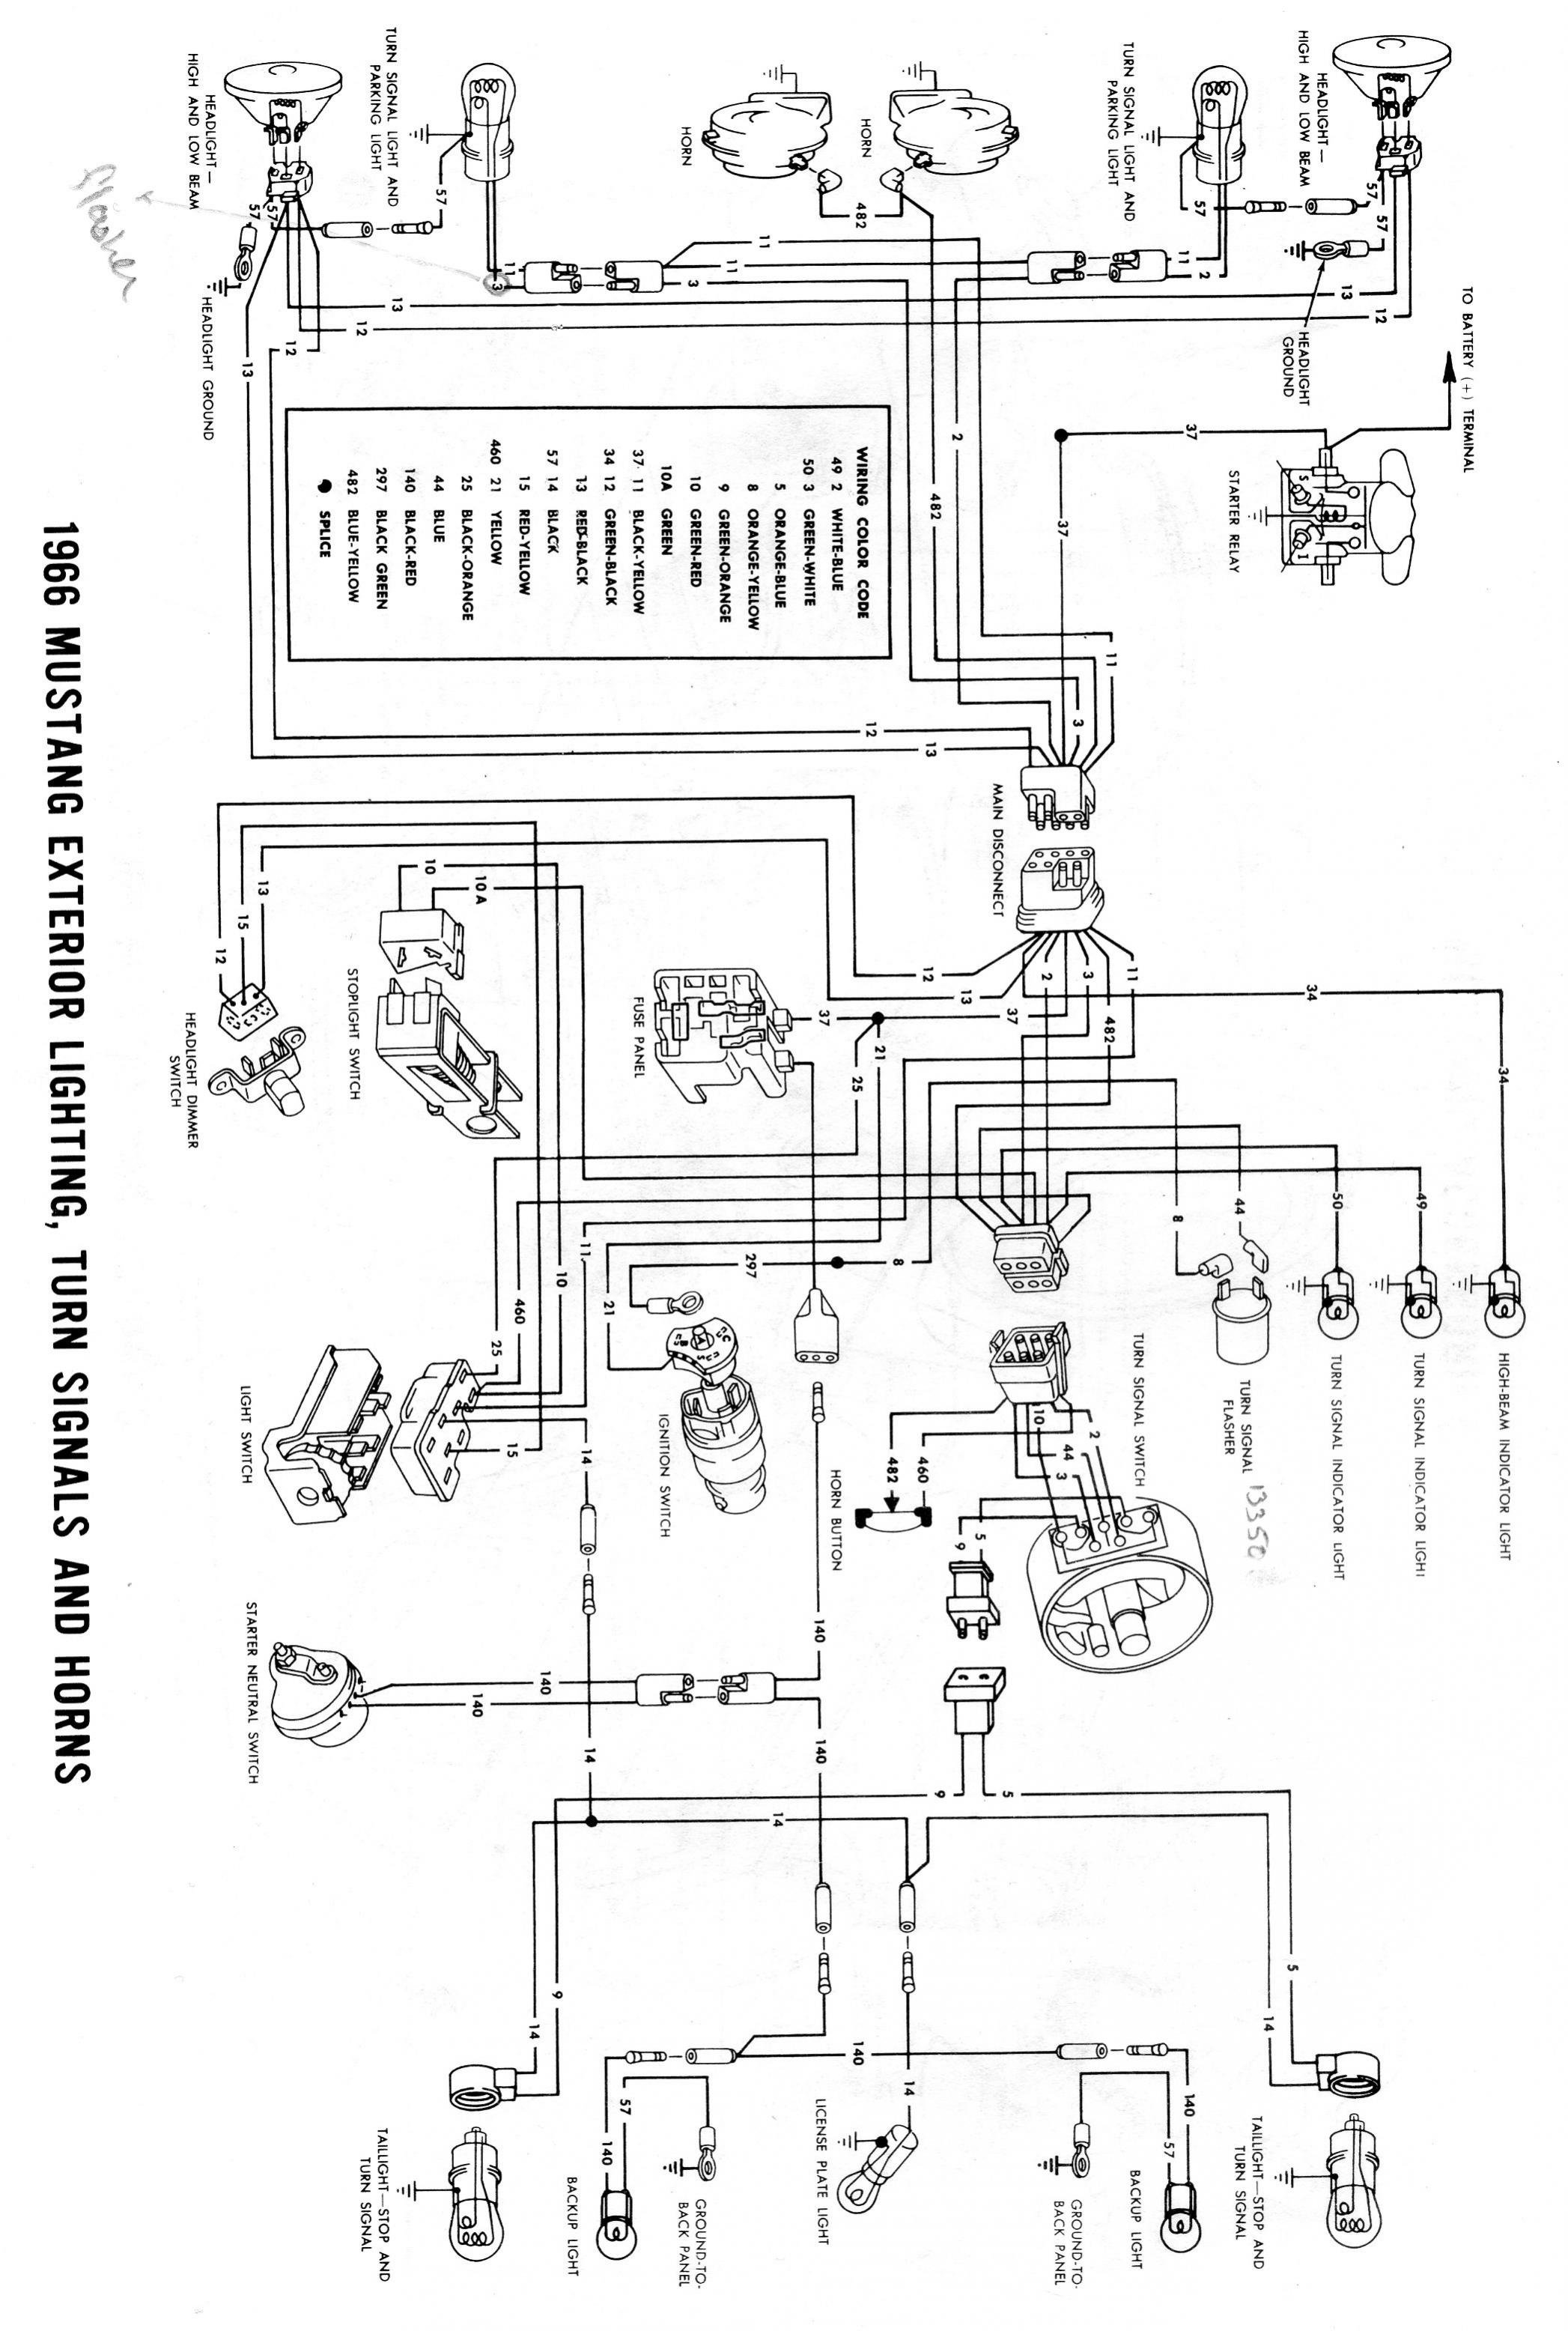 68 cougar turn signal switch wiring diagram wiring diagram 1968 mustang turn signal switch wiring